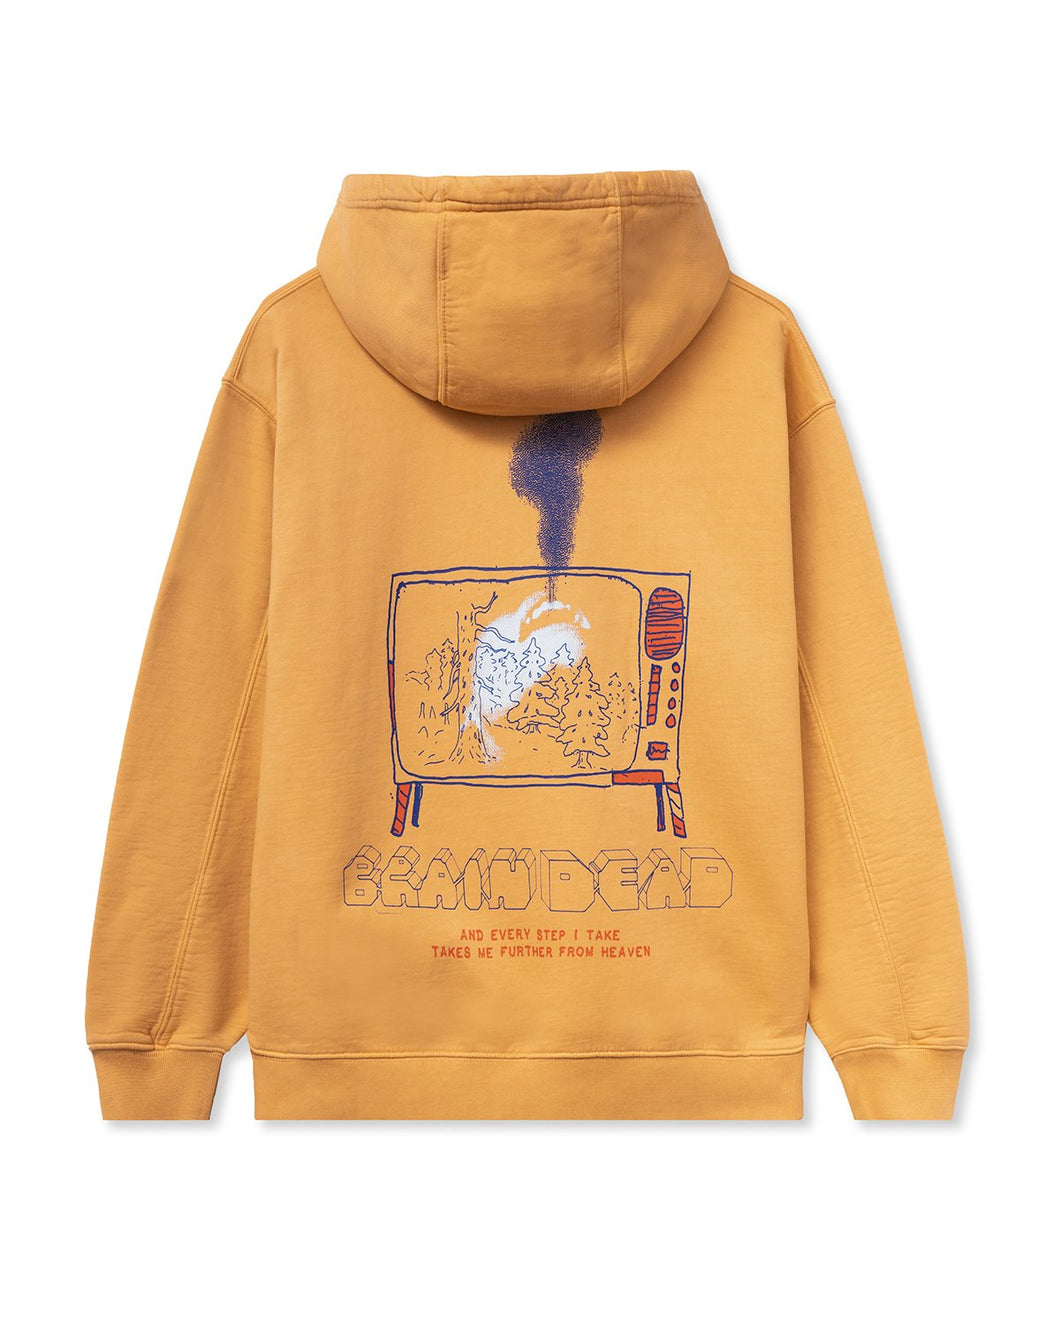 Brain Dead FURTHER FROM HEAVEN LONG SLEEVE HOODED SWEATSHIRT - TERRACOTTA